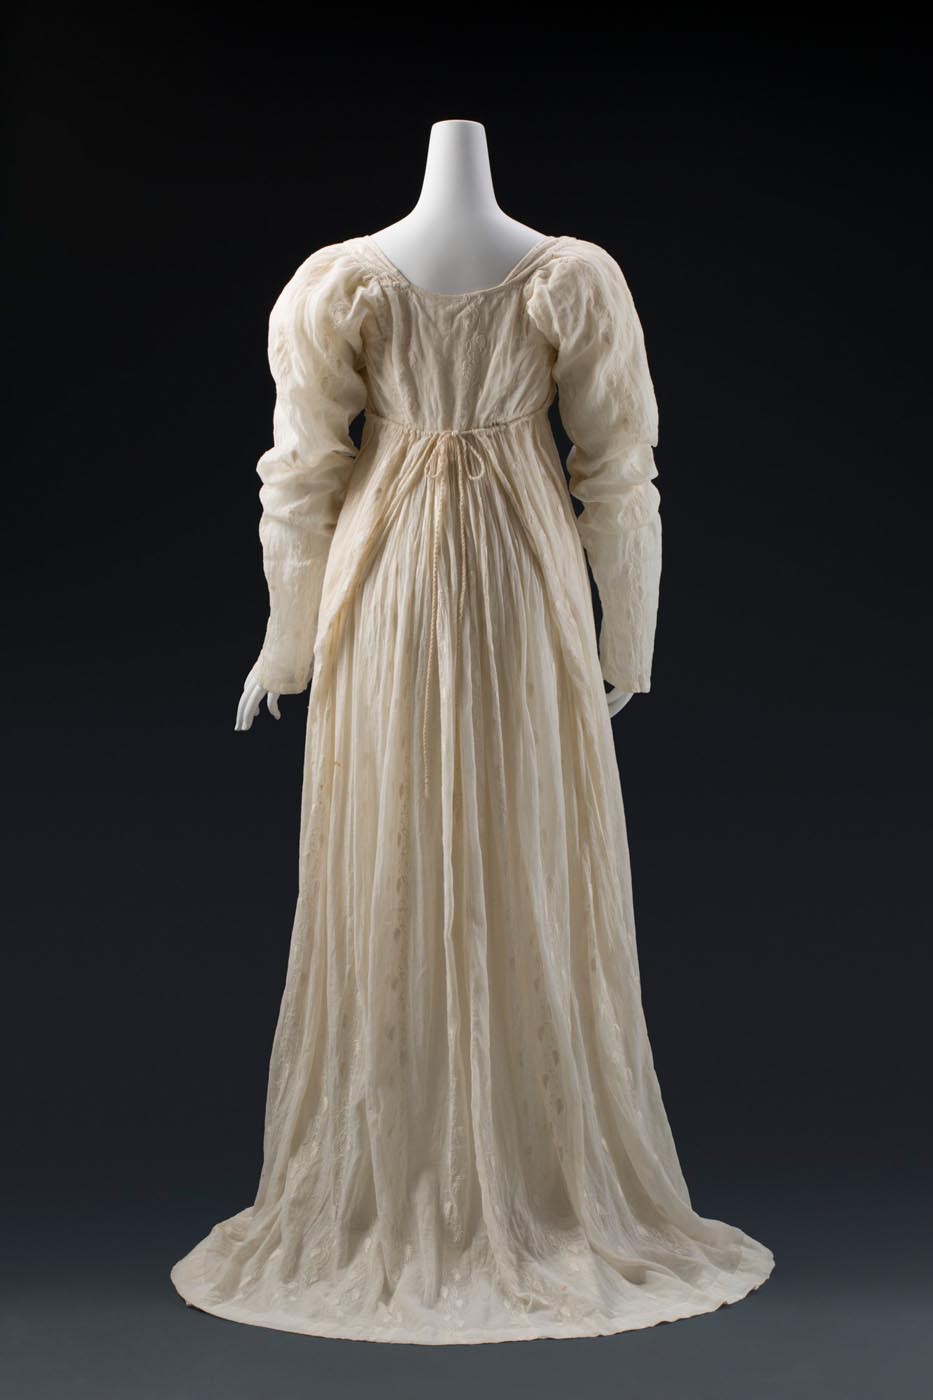 Rear view of Ann Deane's dress, with bodice tie wrapping at the back. - click to view larger image